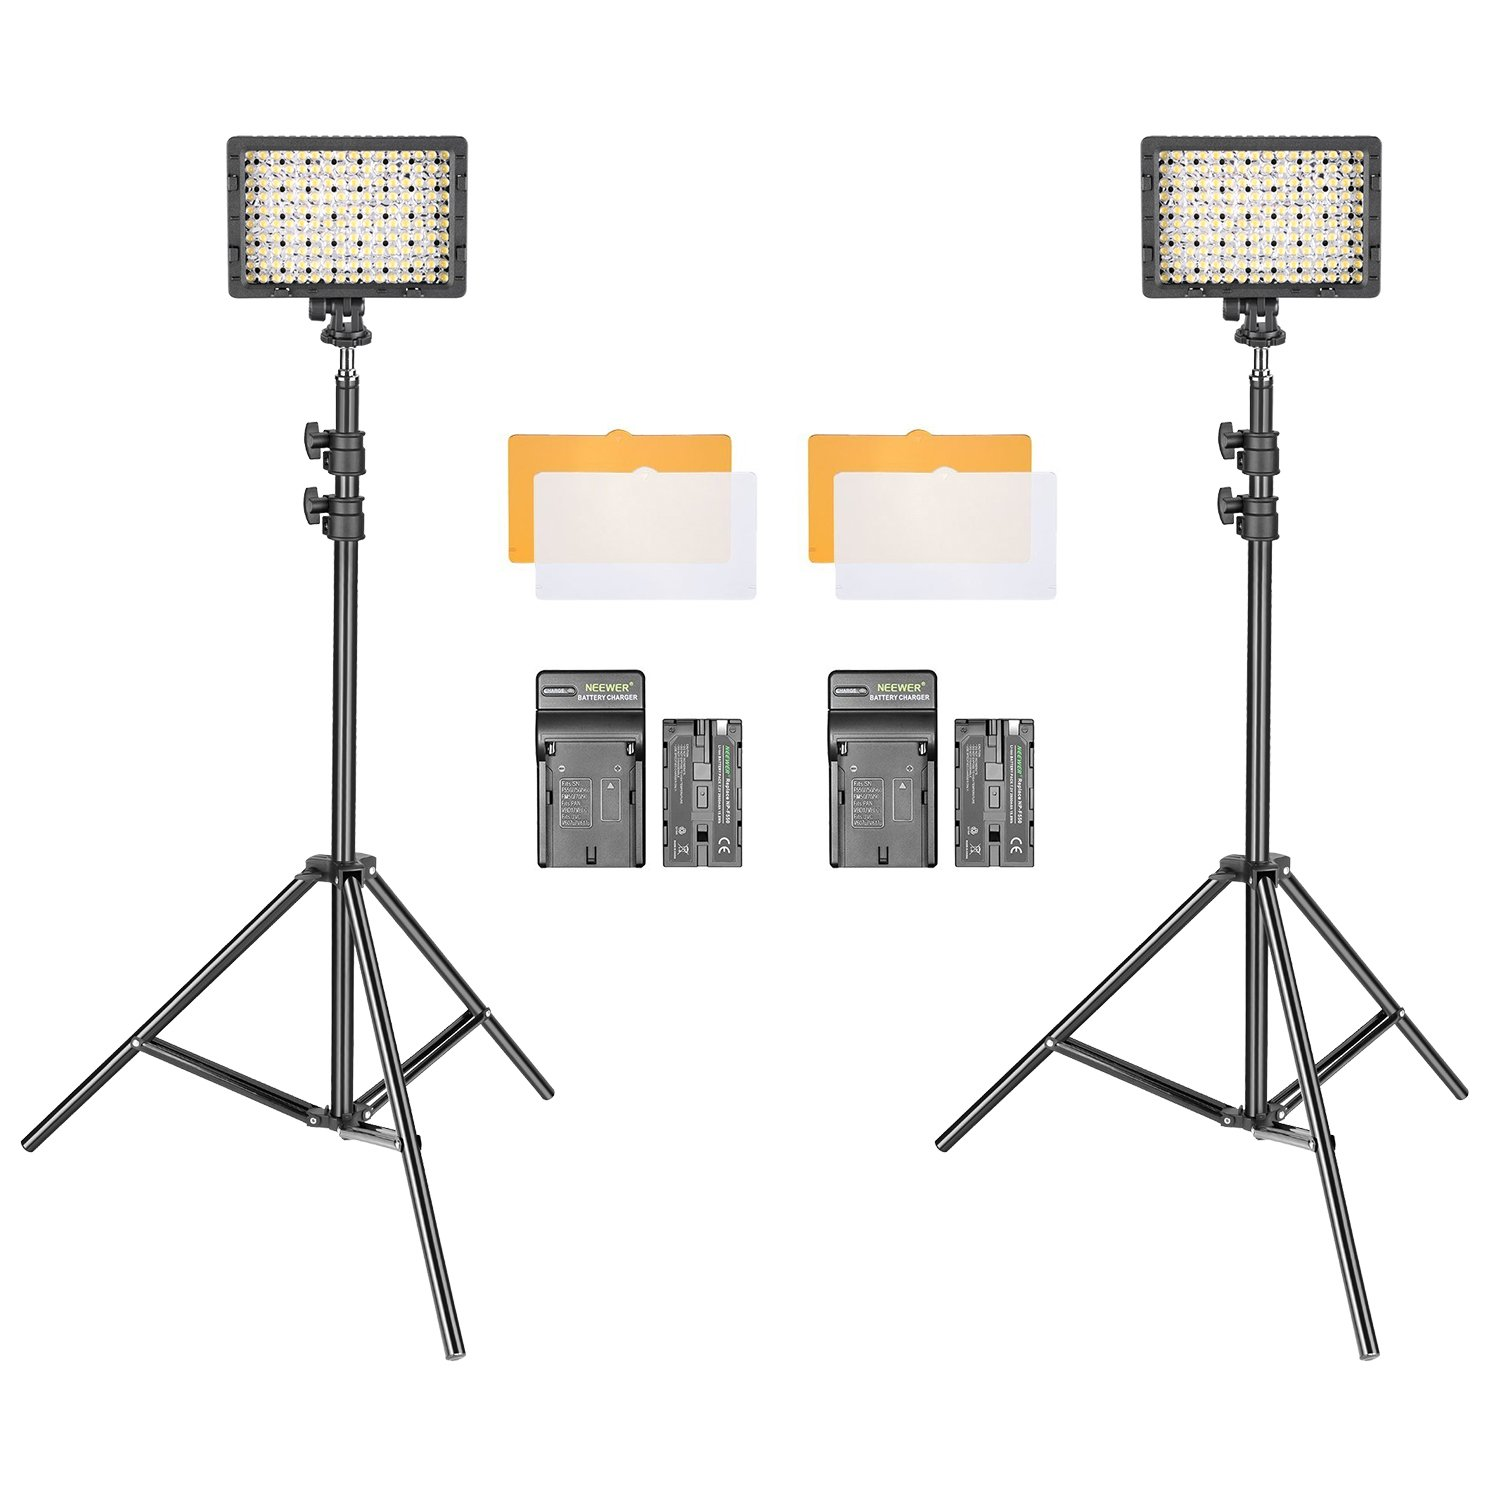 Neewer Two Pieces CN-216 Dimmable Ultra High Power Panel LED Video Light Lighting Kit with Carrying Bag for Canon, Nikon, Pentax, Panasonic, SONY, Samsung, Olympus and Other DSLR Cameras 90085445